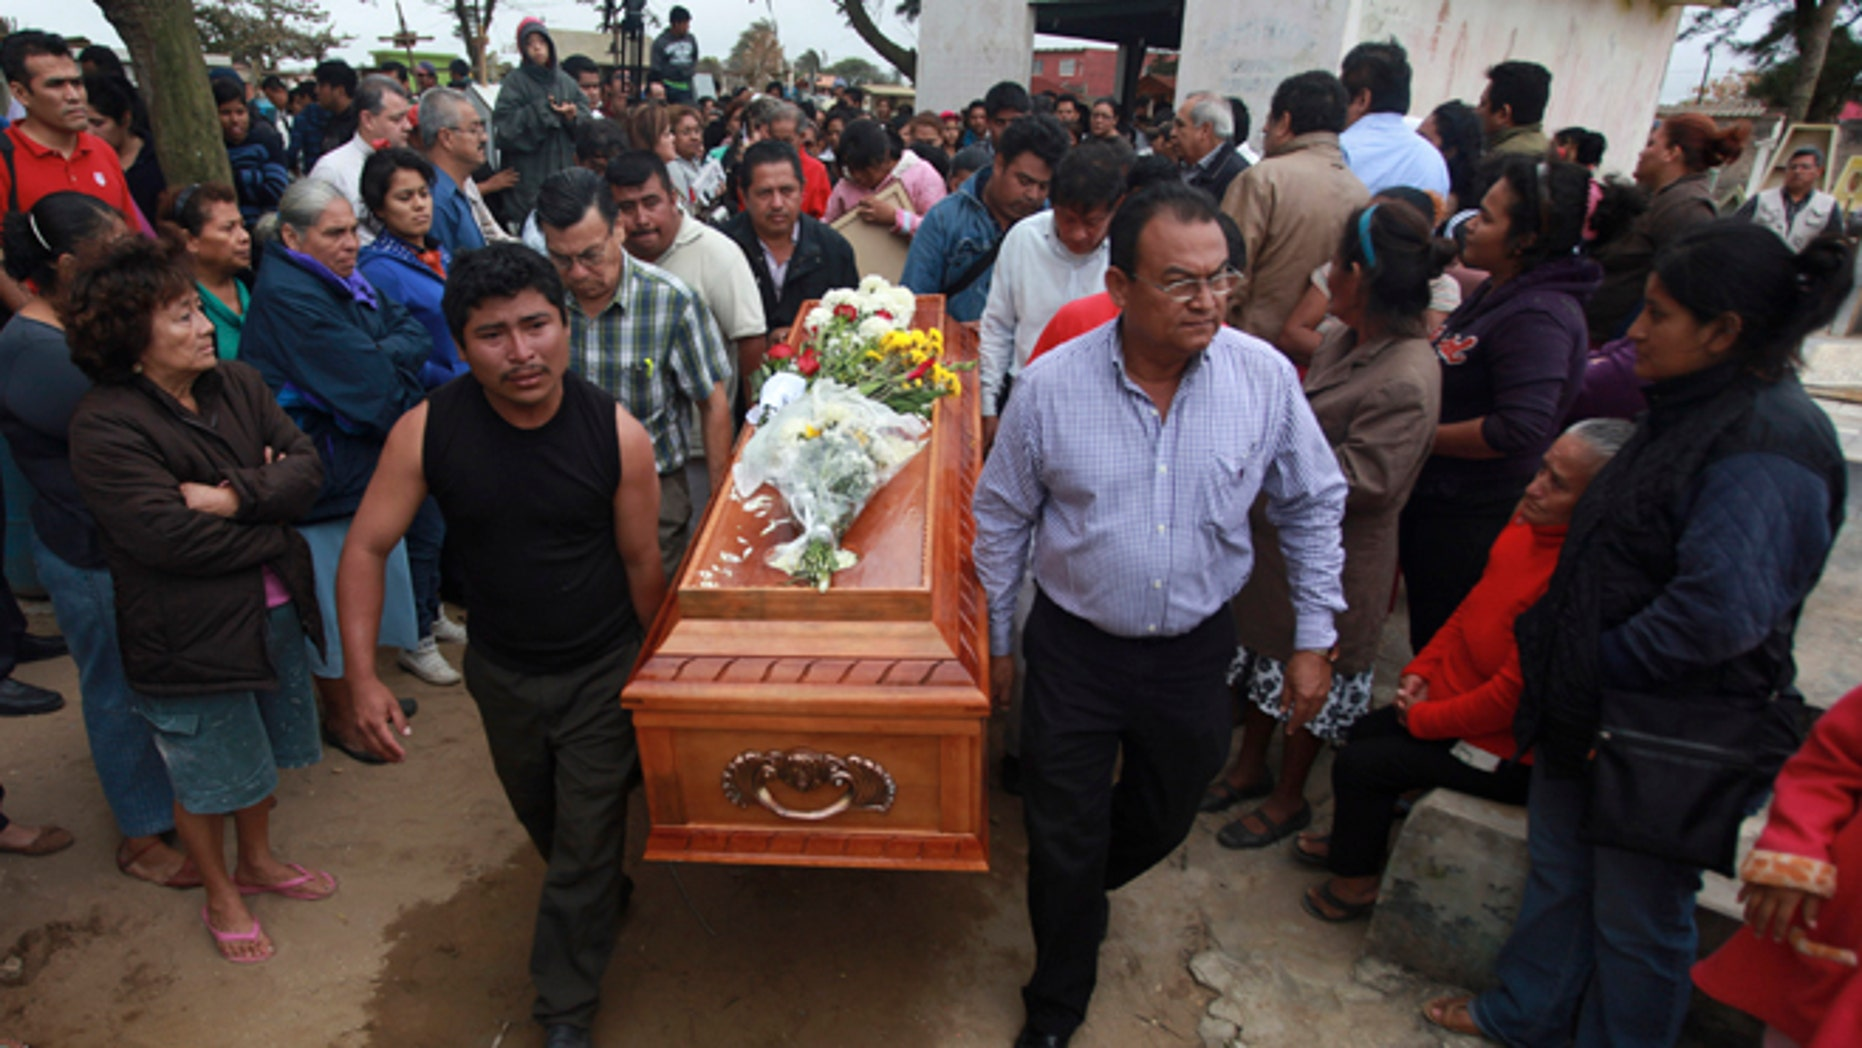 Relatives carry the coffin that contain the remains of slain journalist Gregorio Jiménez as they walk towards the cemetery in Coatzacoalcos, Mexico, Wednesday, Feb. 12, 2014. Veracruz state officials concluded that Jiménez, a police beat reporter, was killed in a personal vendetta, unrelated to his reporting. But journalists throughout Mexico are calling for a thorough investigation. Jimenez is the 12th journalist slain or gone missing since 2010 in the Gulf state of Veracruz. (AP Photo/Felix Marquez)